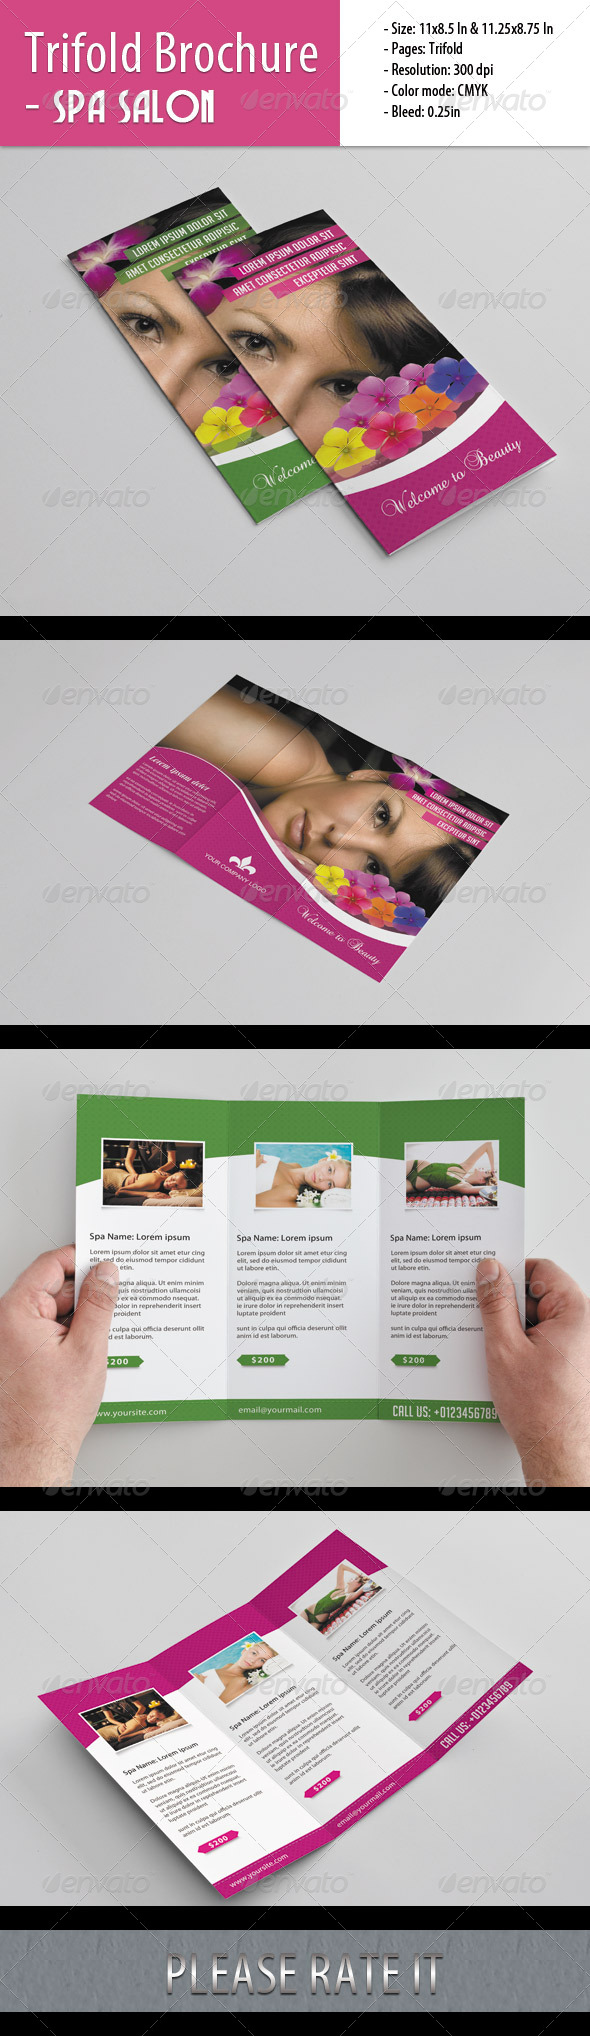 Trifold Brochure For Spa Salon - Corporate Brochures